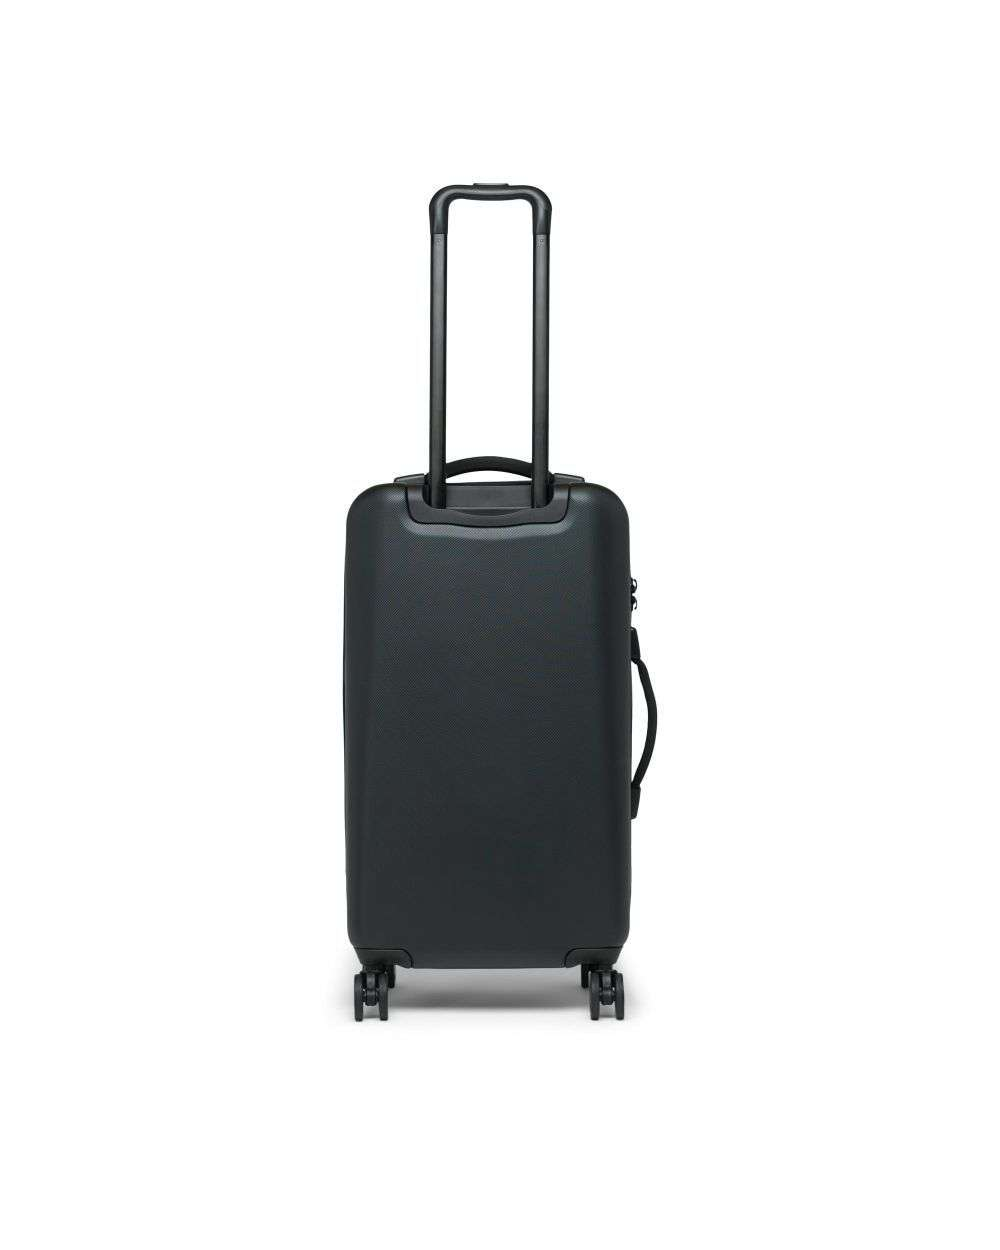 Herschel 'Trade' Luggage Hard Shell | Medium ABS Umisfashion Store